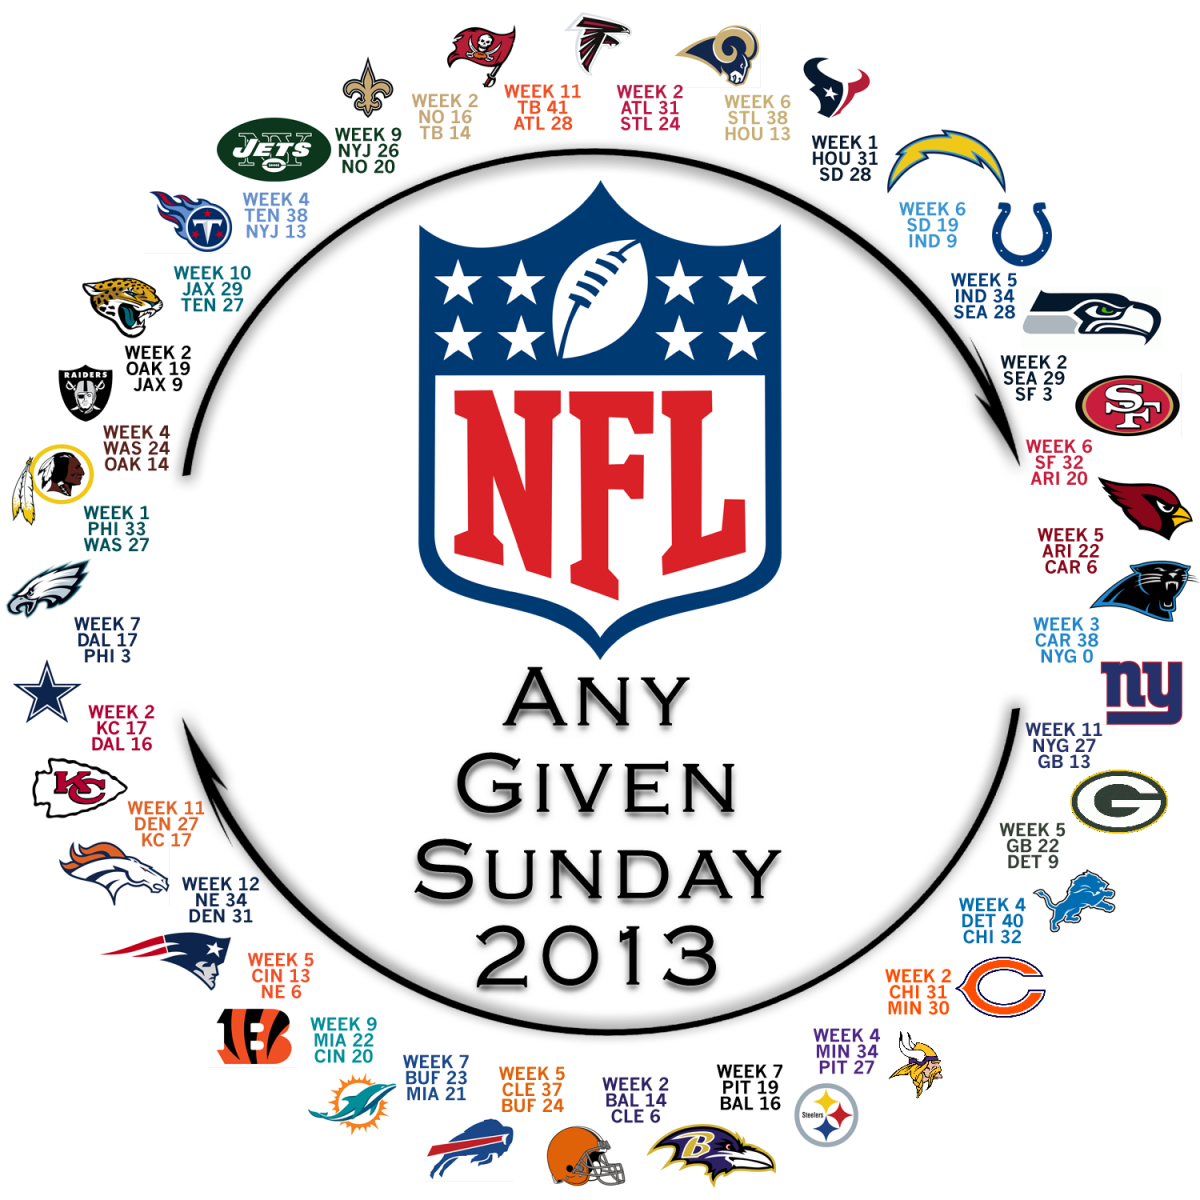 The NFL's 2013 Circle of Parity